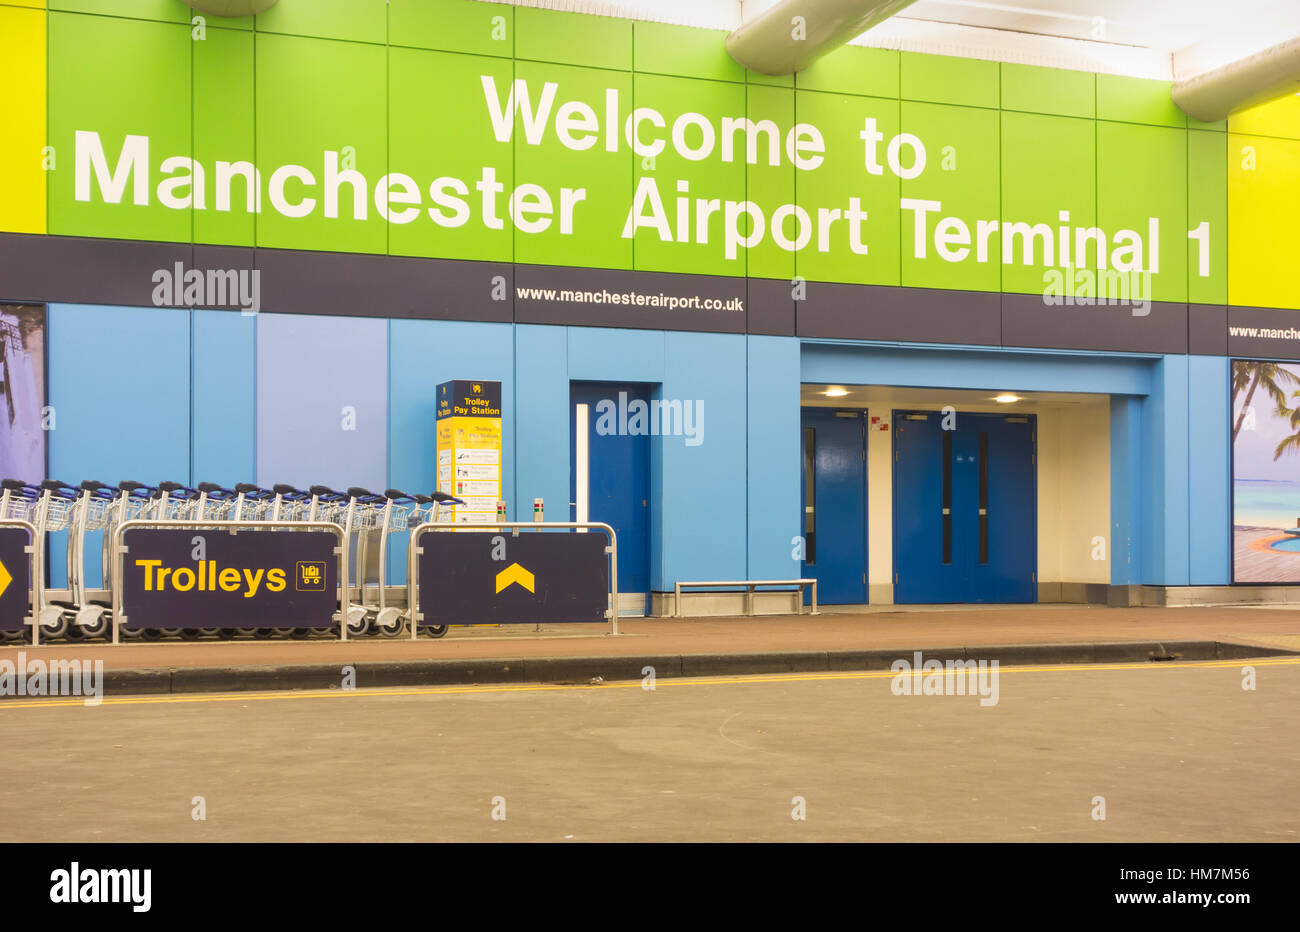 Terminal 1 Meet And Greet Manchester Gallery Greetings Card Design